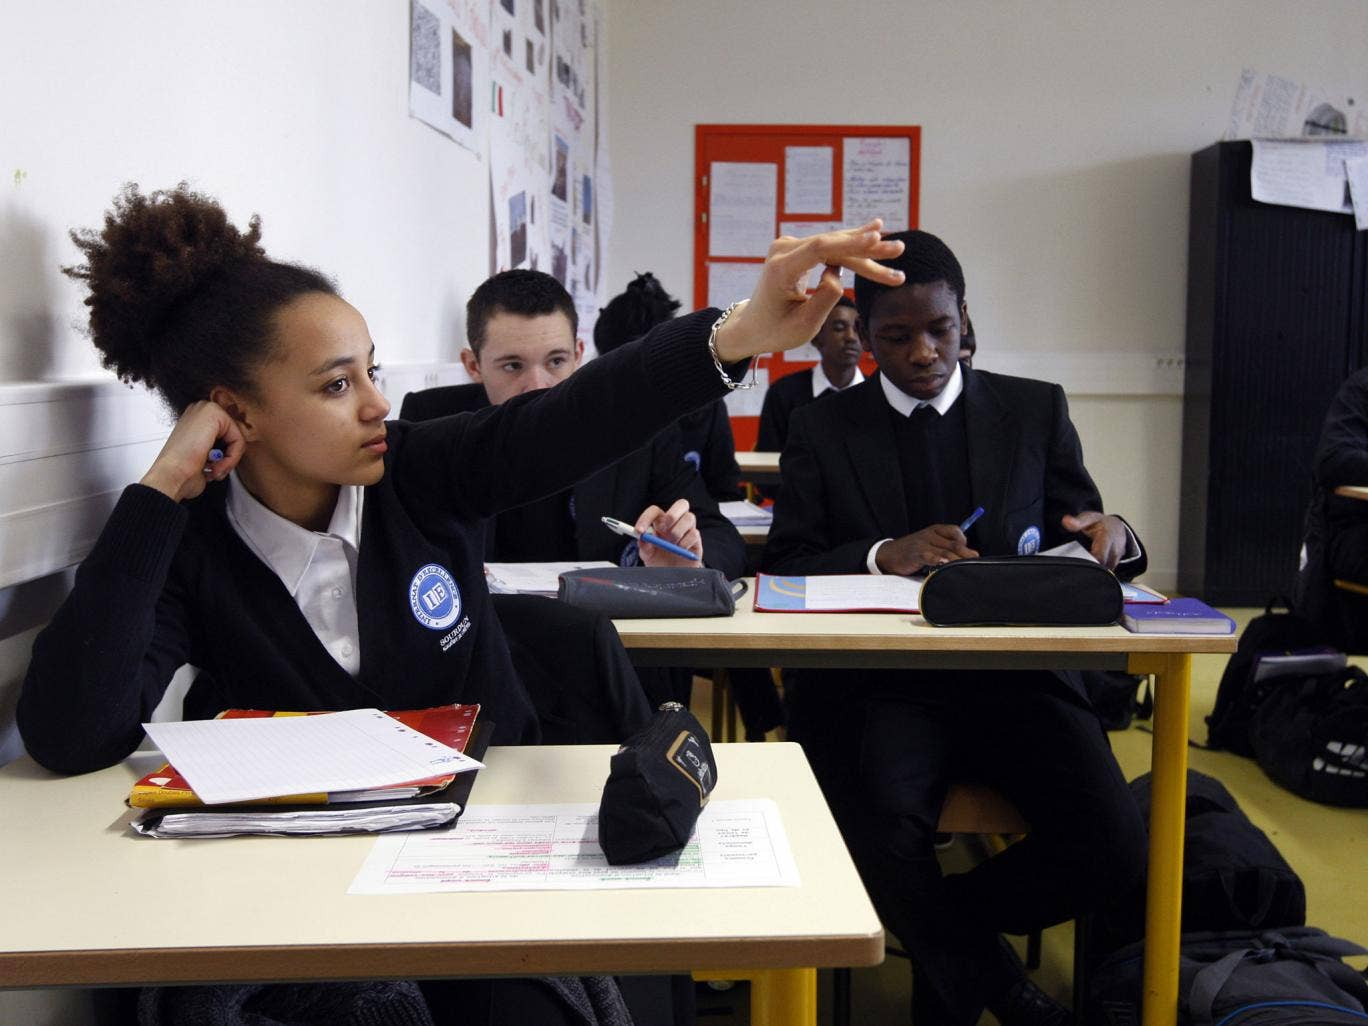 Nationally, 58.1 per cent of black pupils achieved the benchmark of five A* to C grade passes at GCSE – up 8.8 per cent since 2010